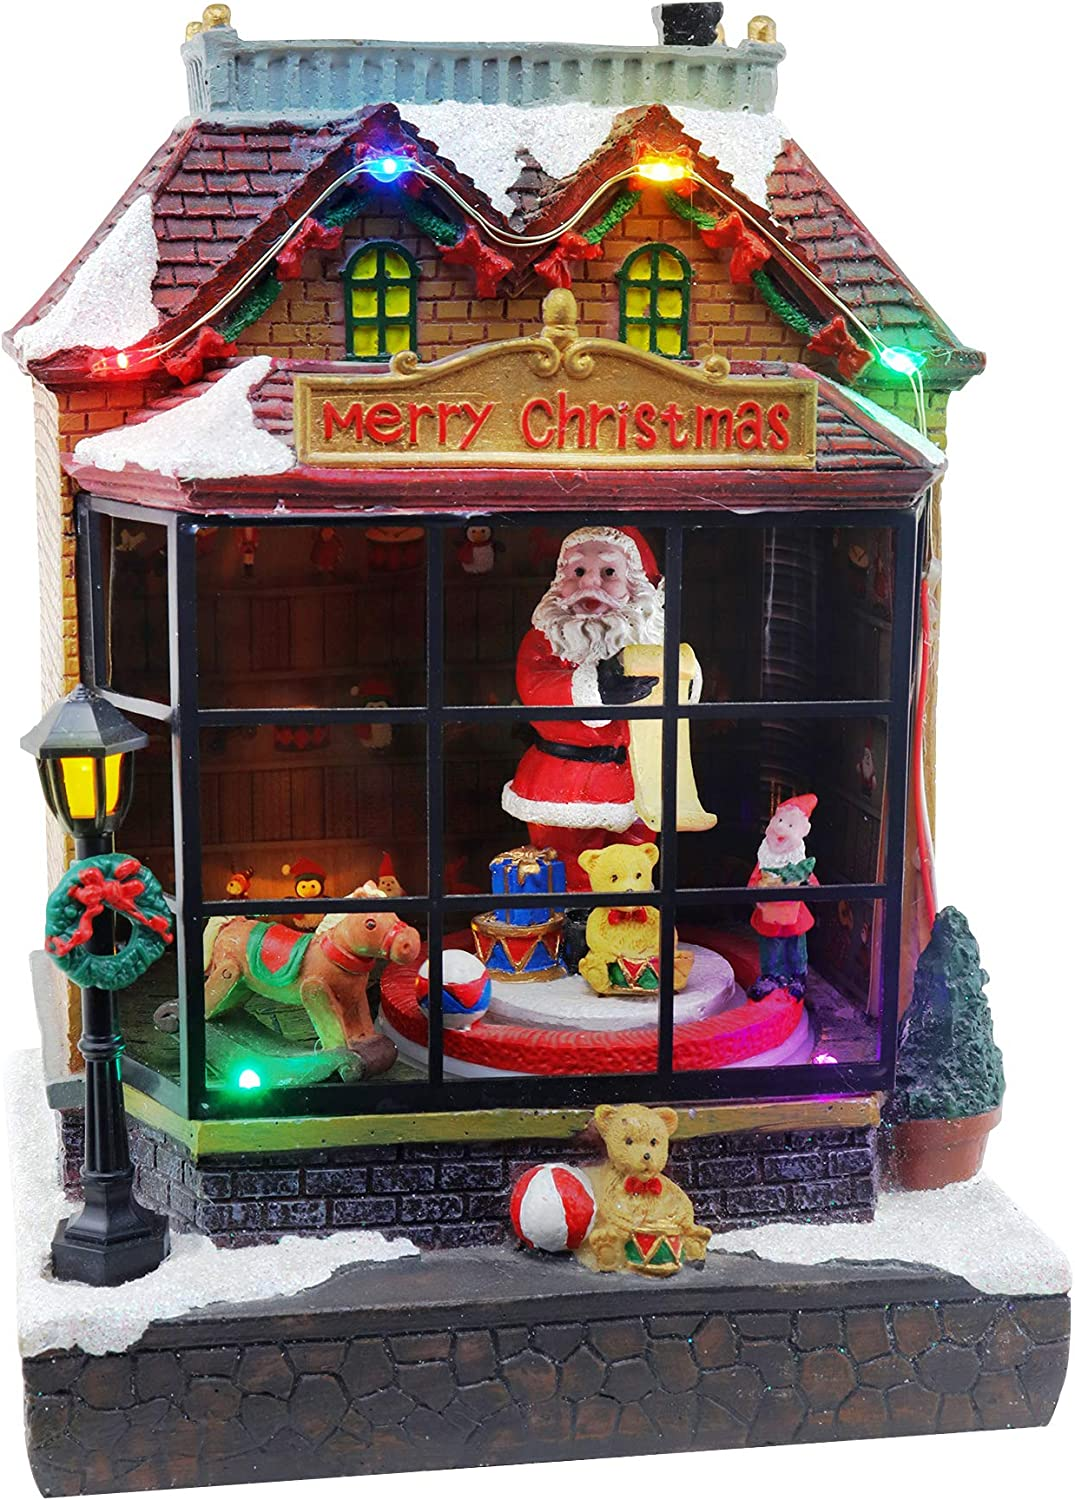 Christmas Santa's Workshop Snow Village | Lighted (Musical) Christmas Village | Perfect Addition to Your Christmas Indoor Decorations & Christmas Village Displays